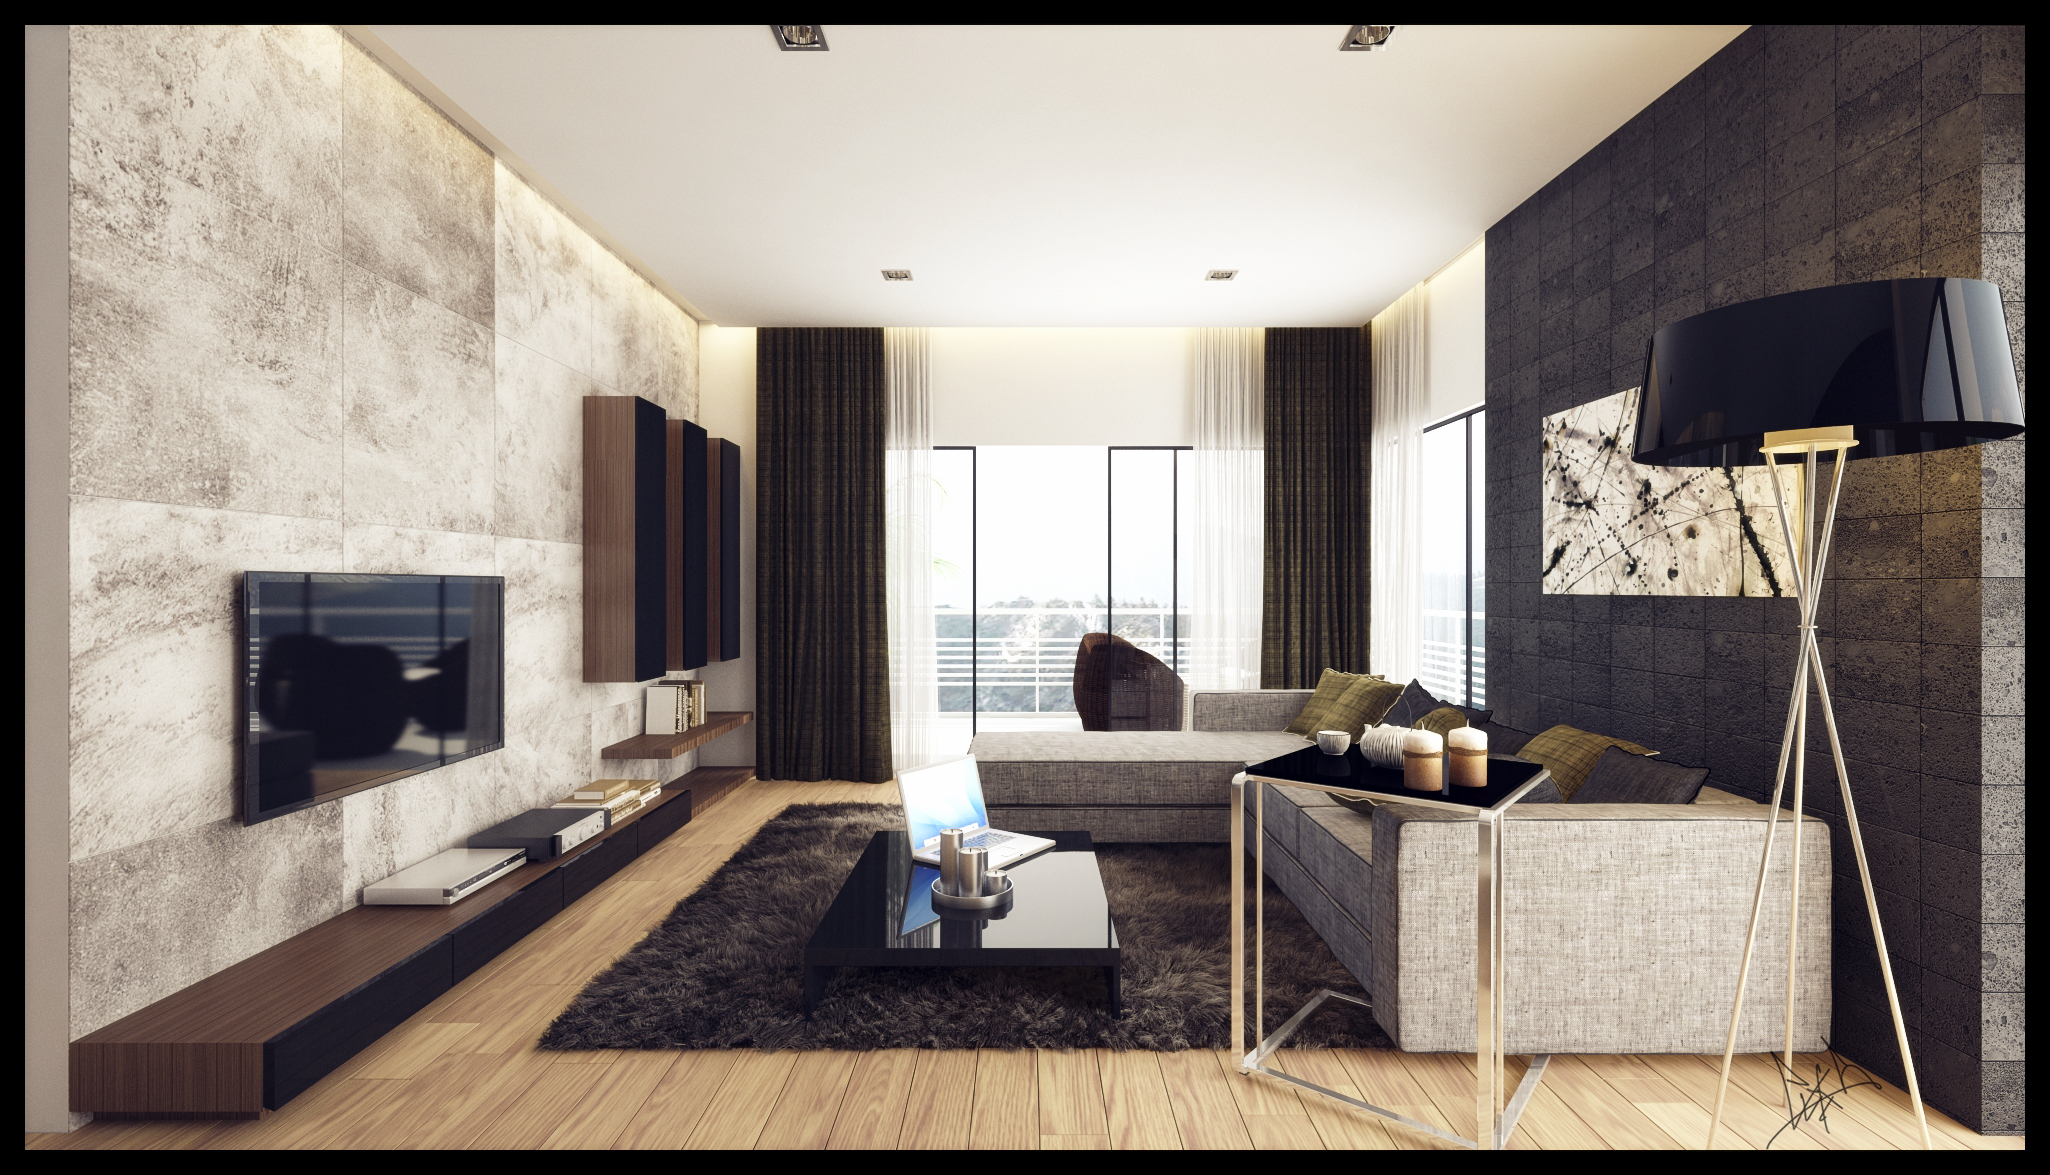 Bayu_LivingRoom_1 by dragon2525